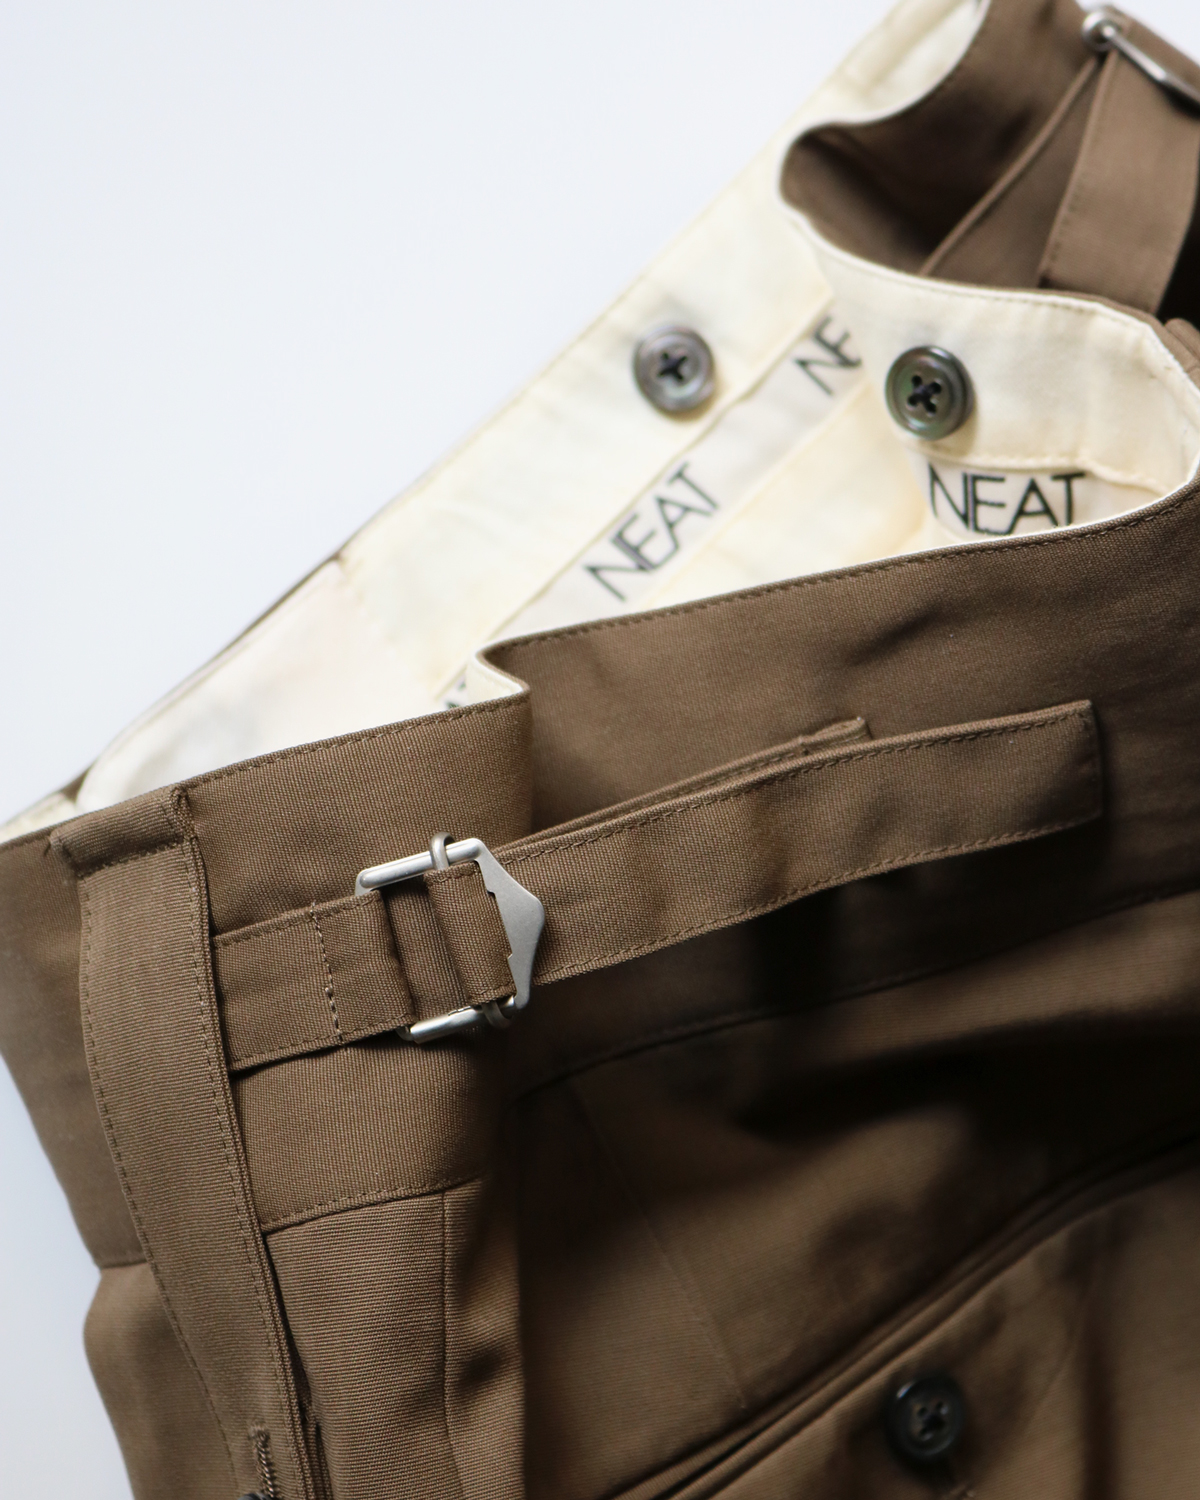 MAX CANVAS BELTLESS - Taupe NEAT